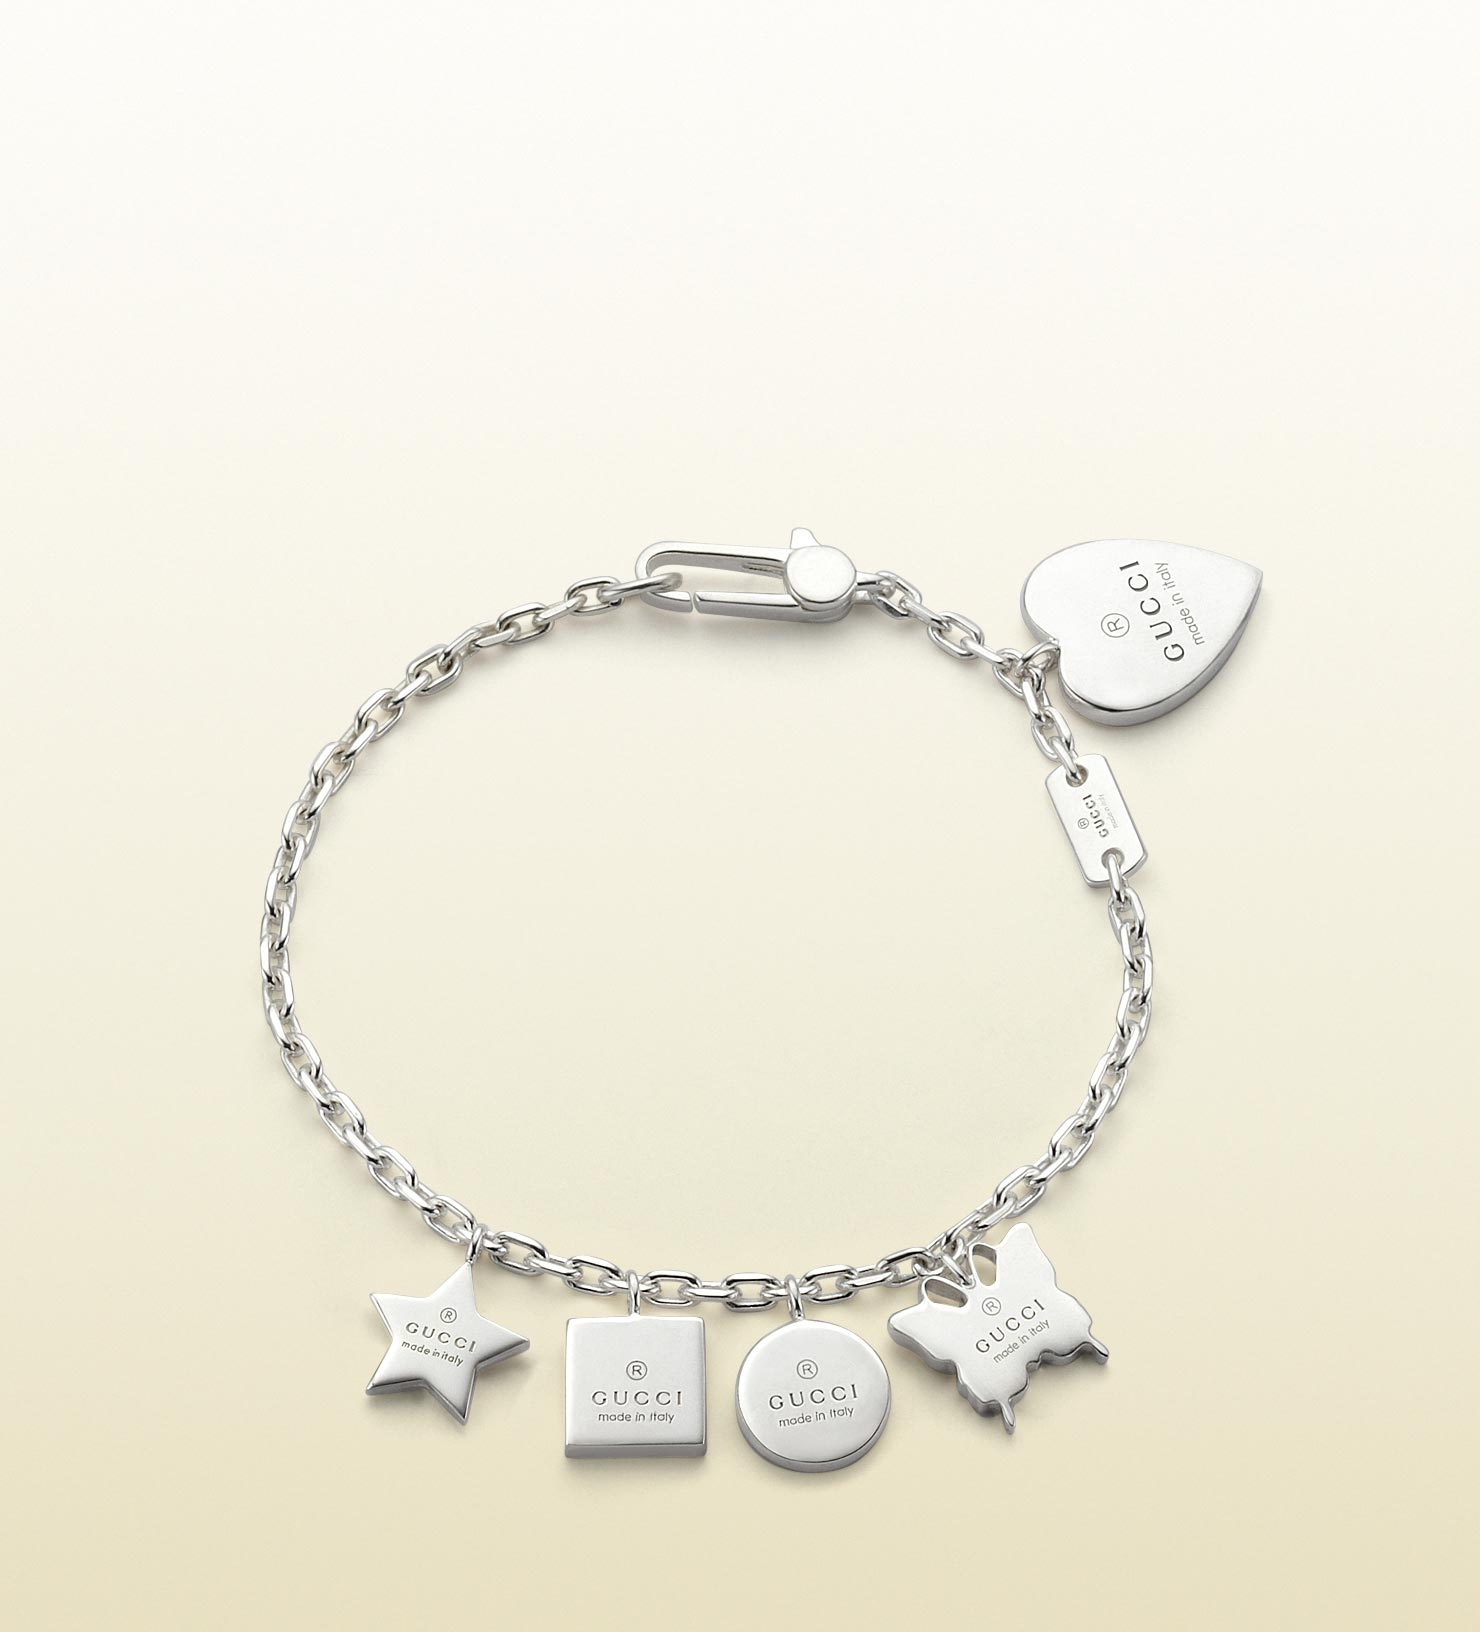 Gucci Bracelet With Trademark Engraved Charms In